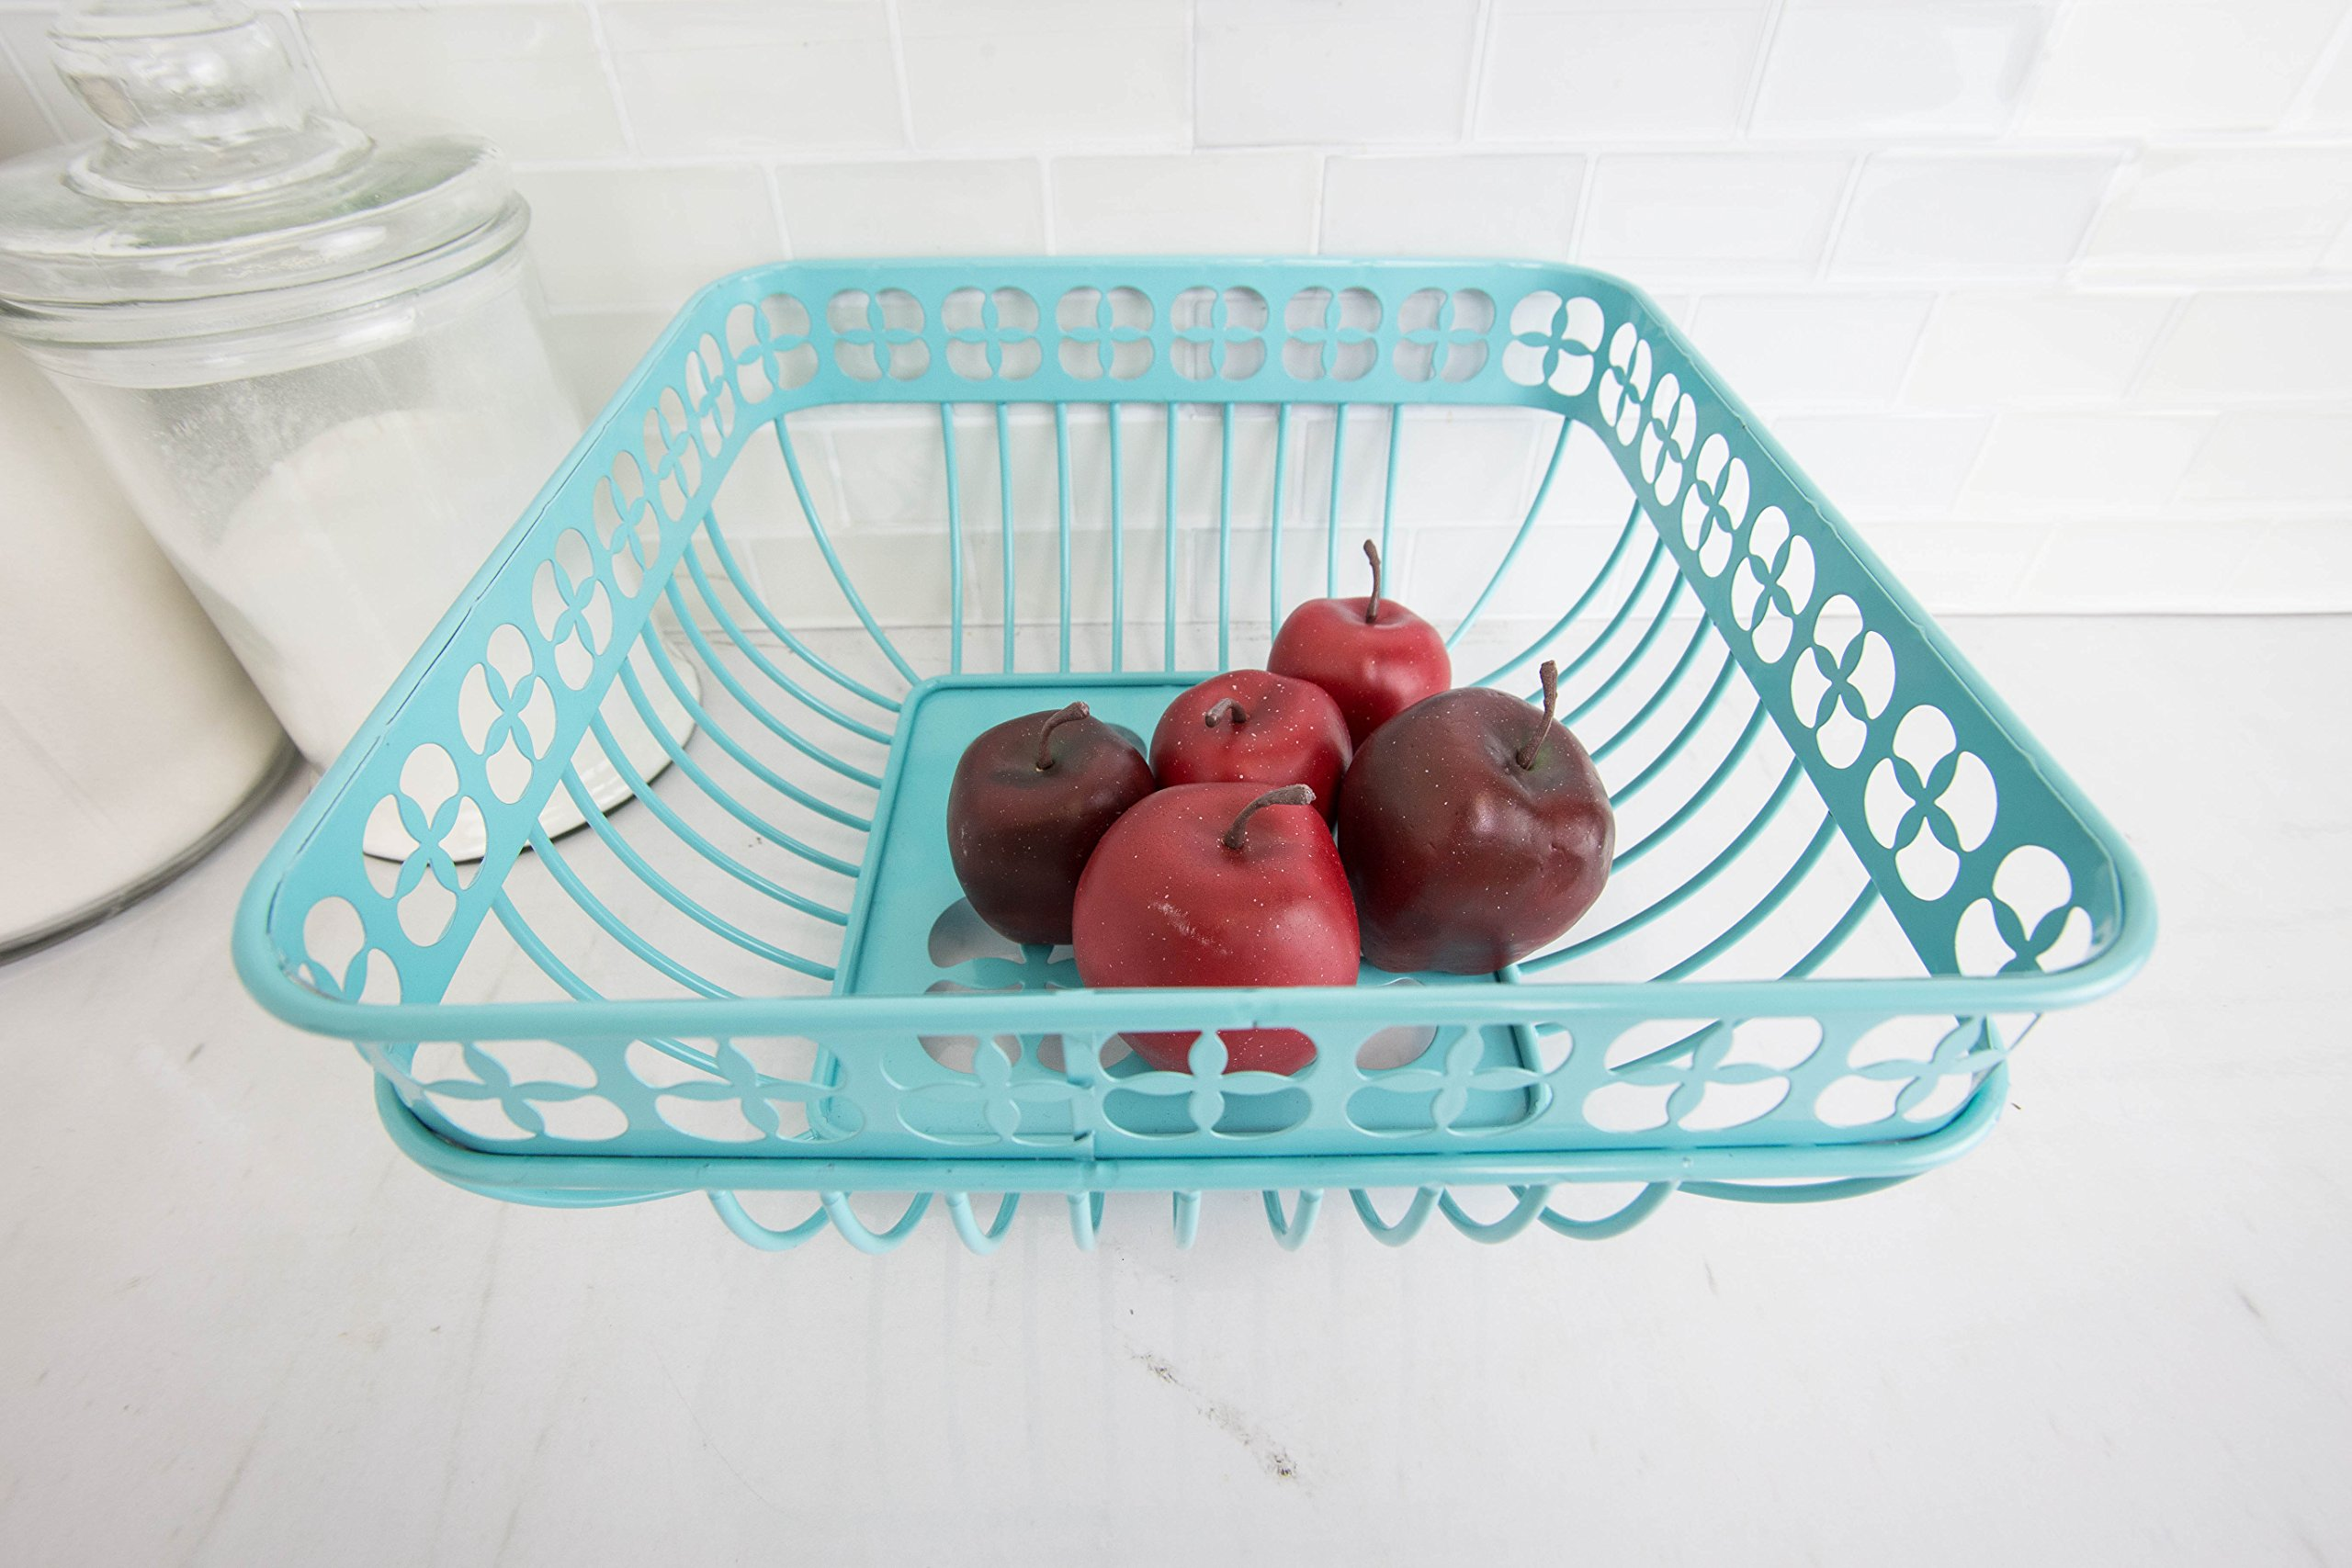 Home Basics Trinity Fruit Basket Square, Turquoise by Home Basics (Image #3)